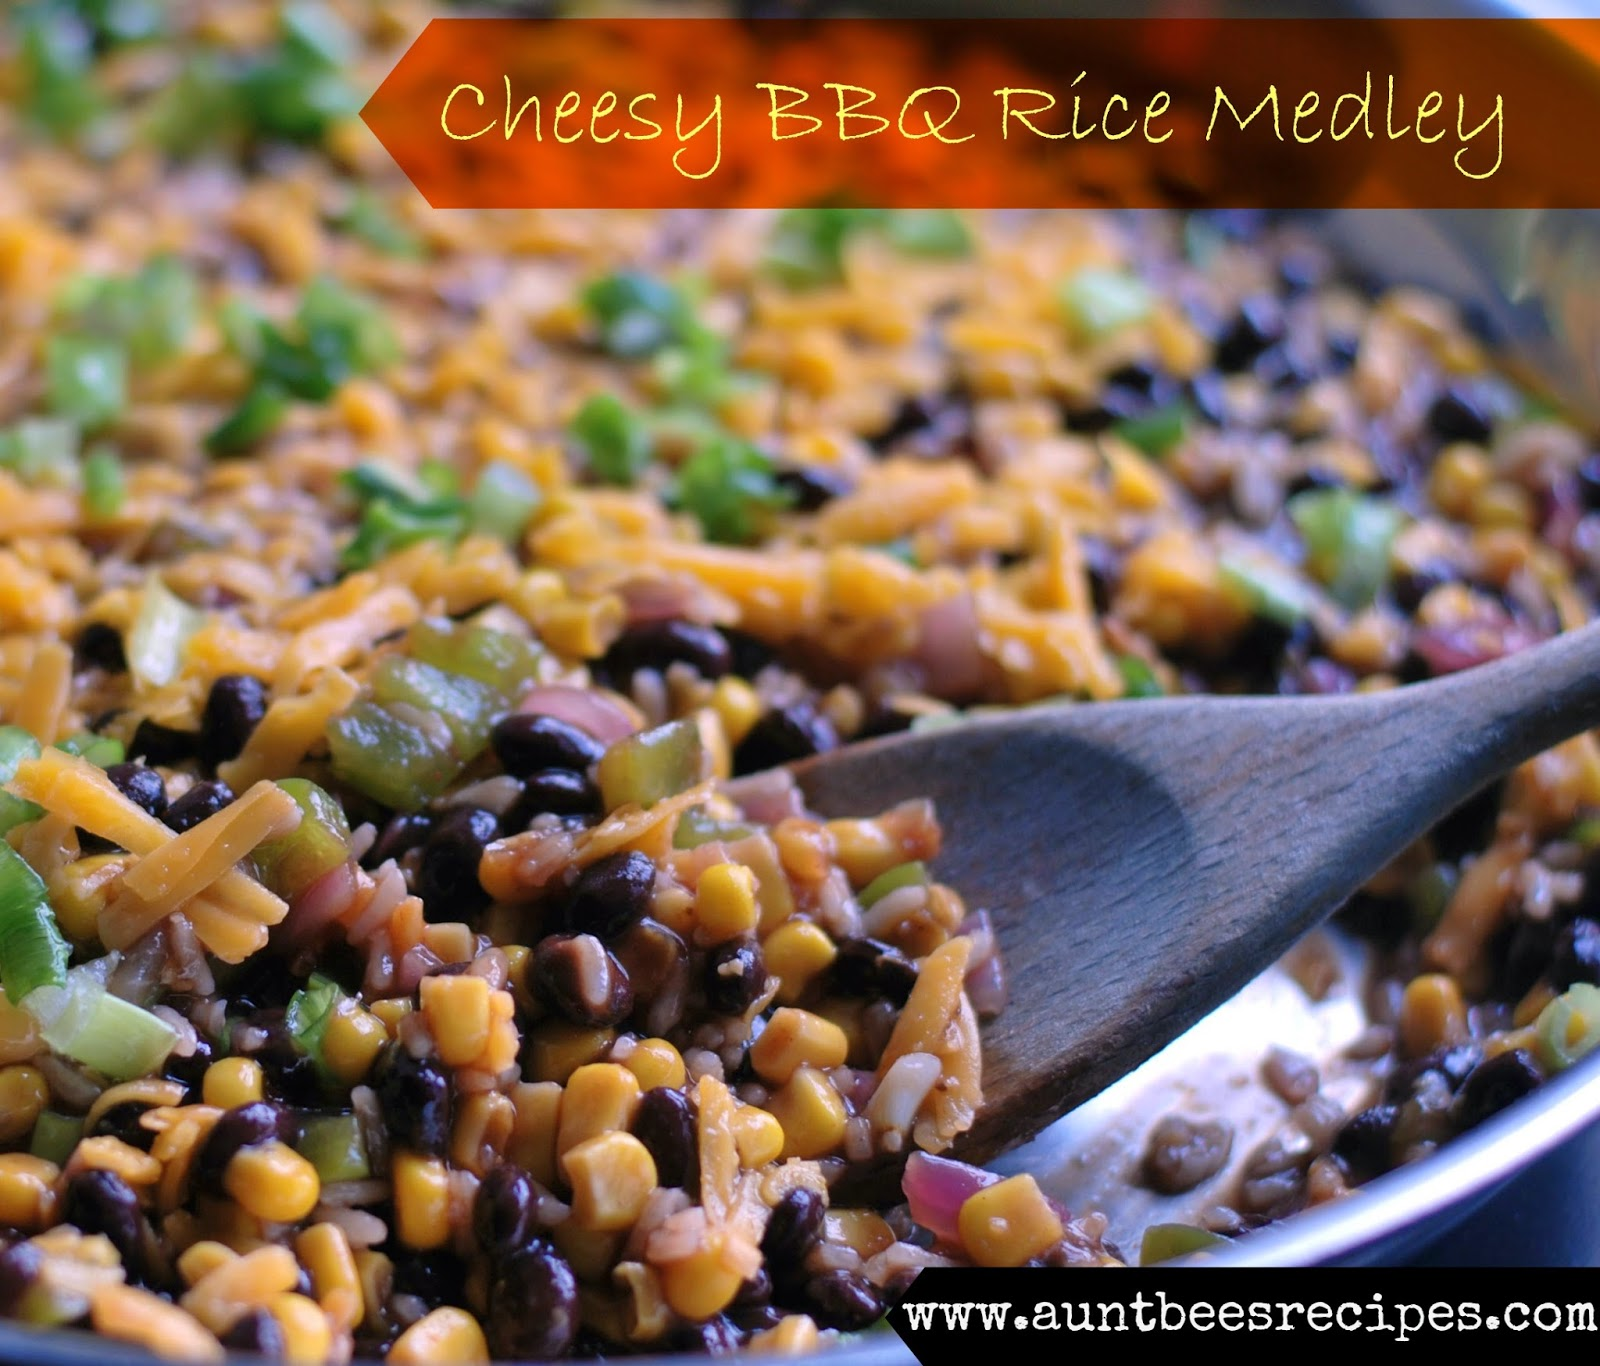 Cheesy BBQ Rice Medley | Aunt Bee's Recipes